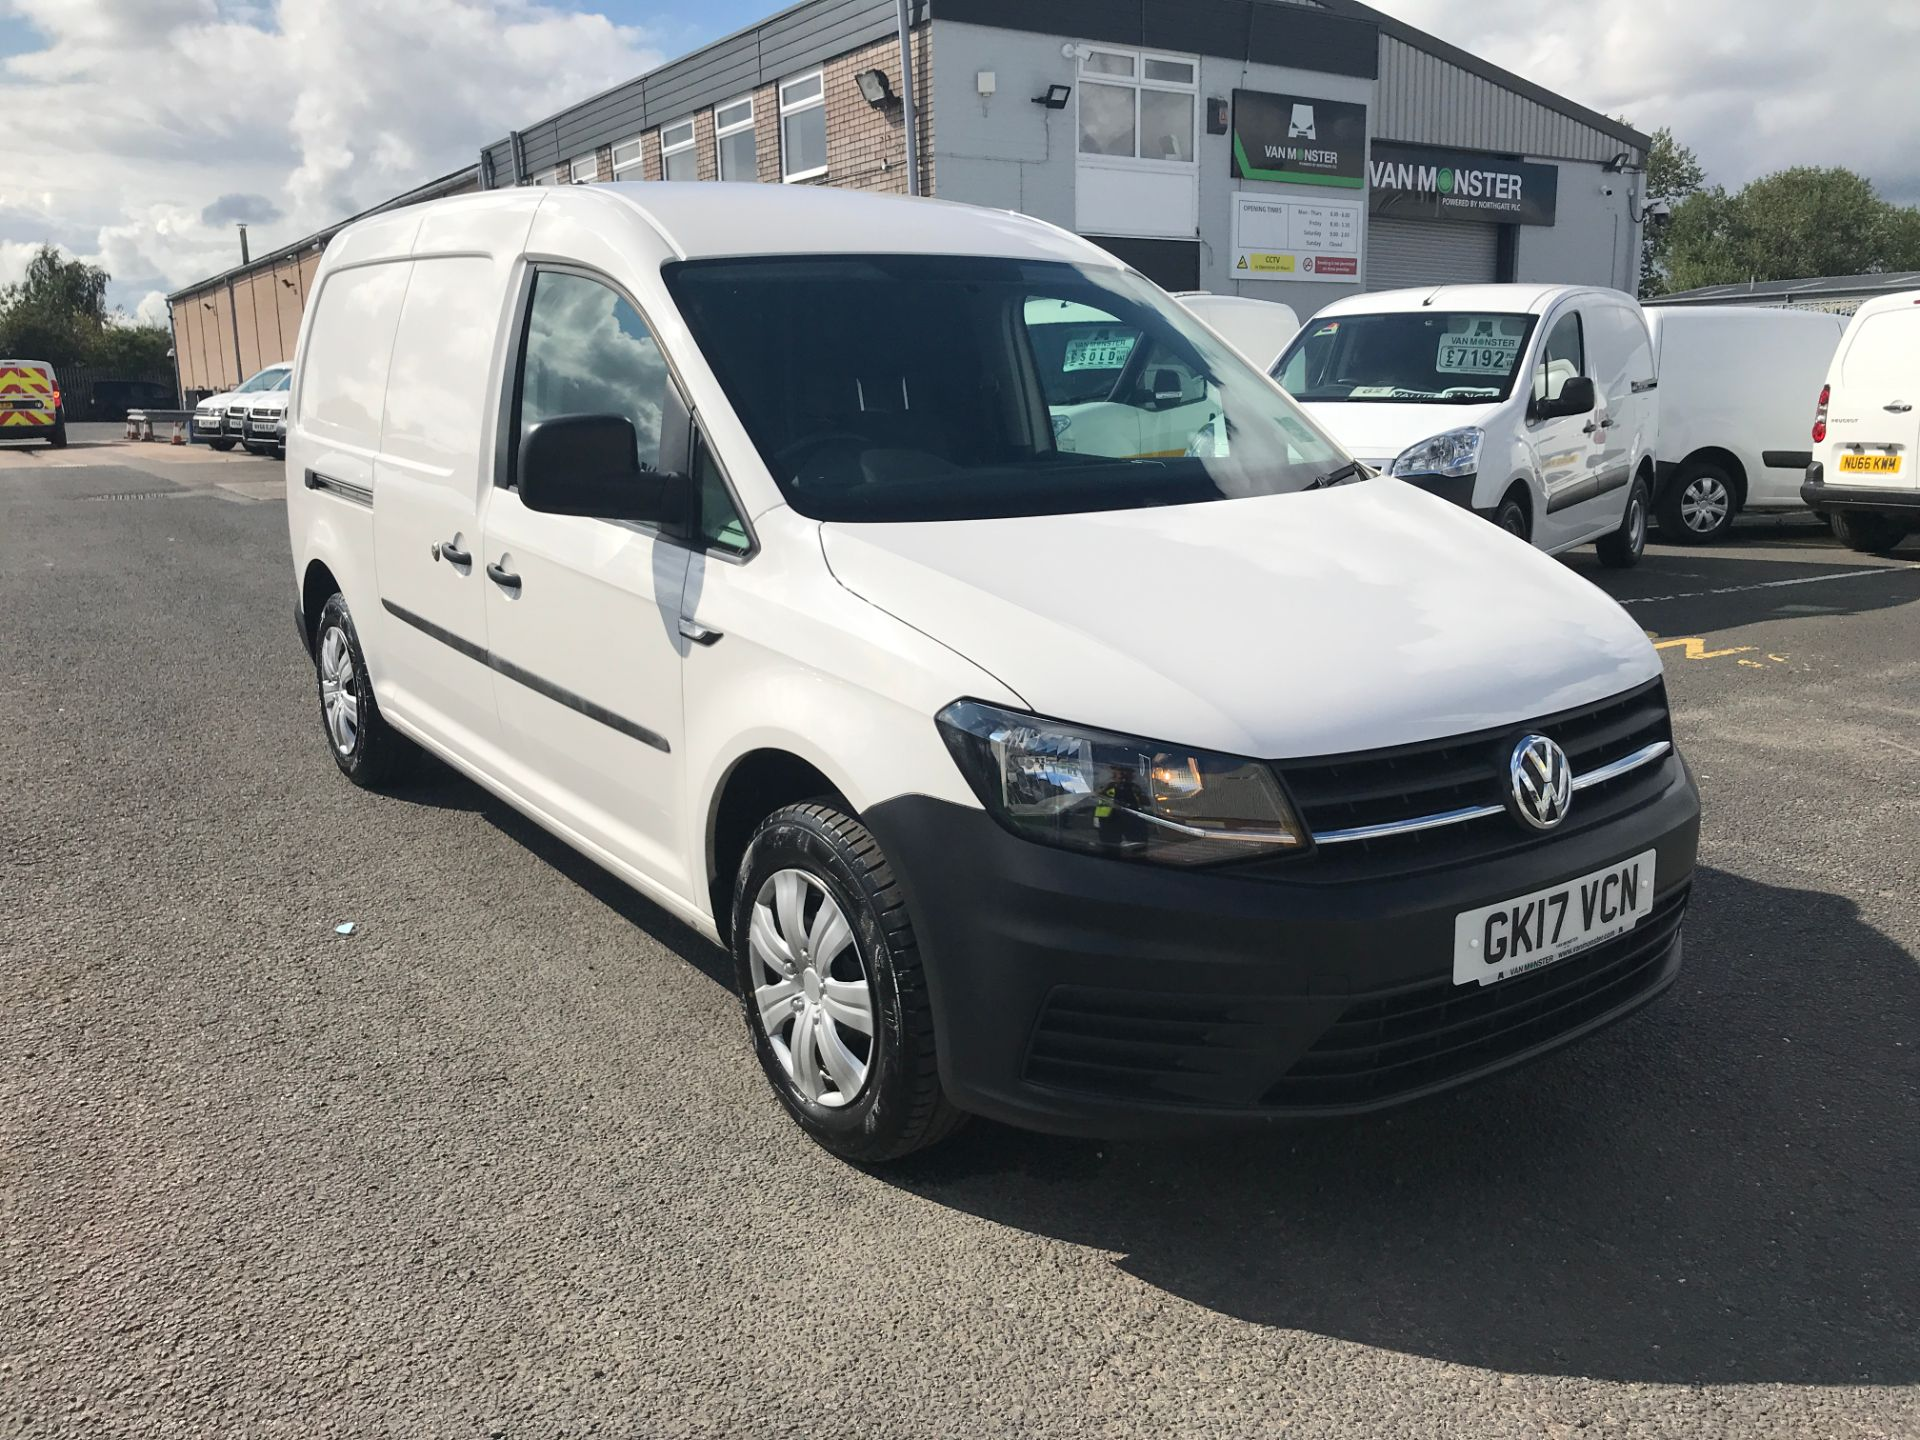 2017 Volkswagen Caddy Maxi 2.0TDI BLUEMOTION TECH 102PS STARTLINE EURO 6 (GK17VCN)